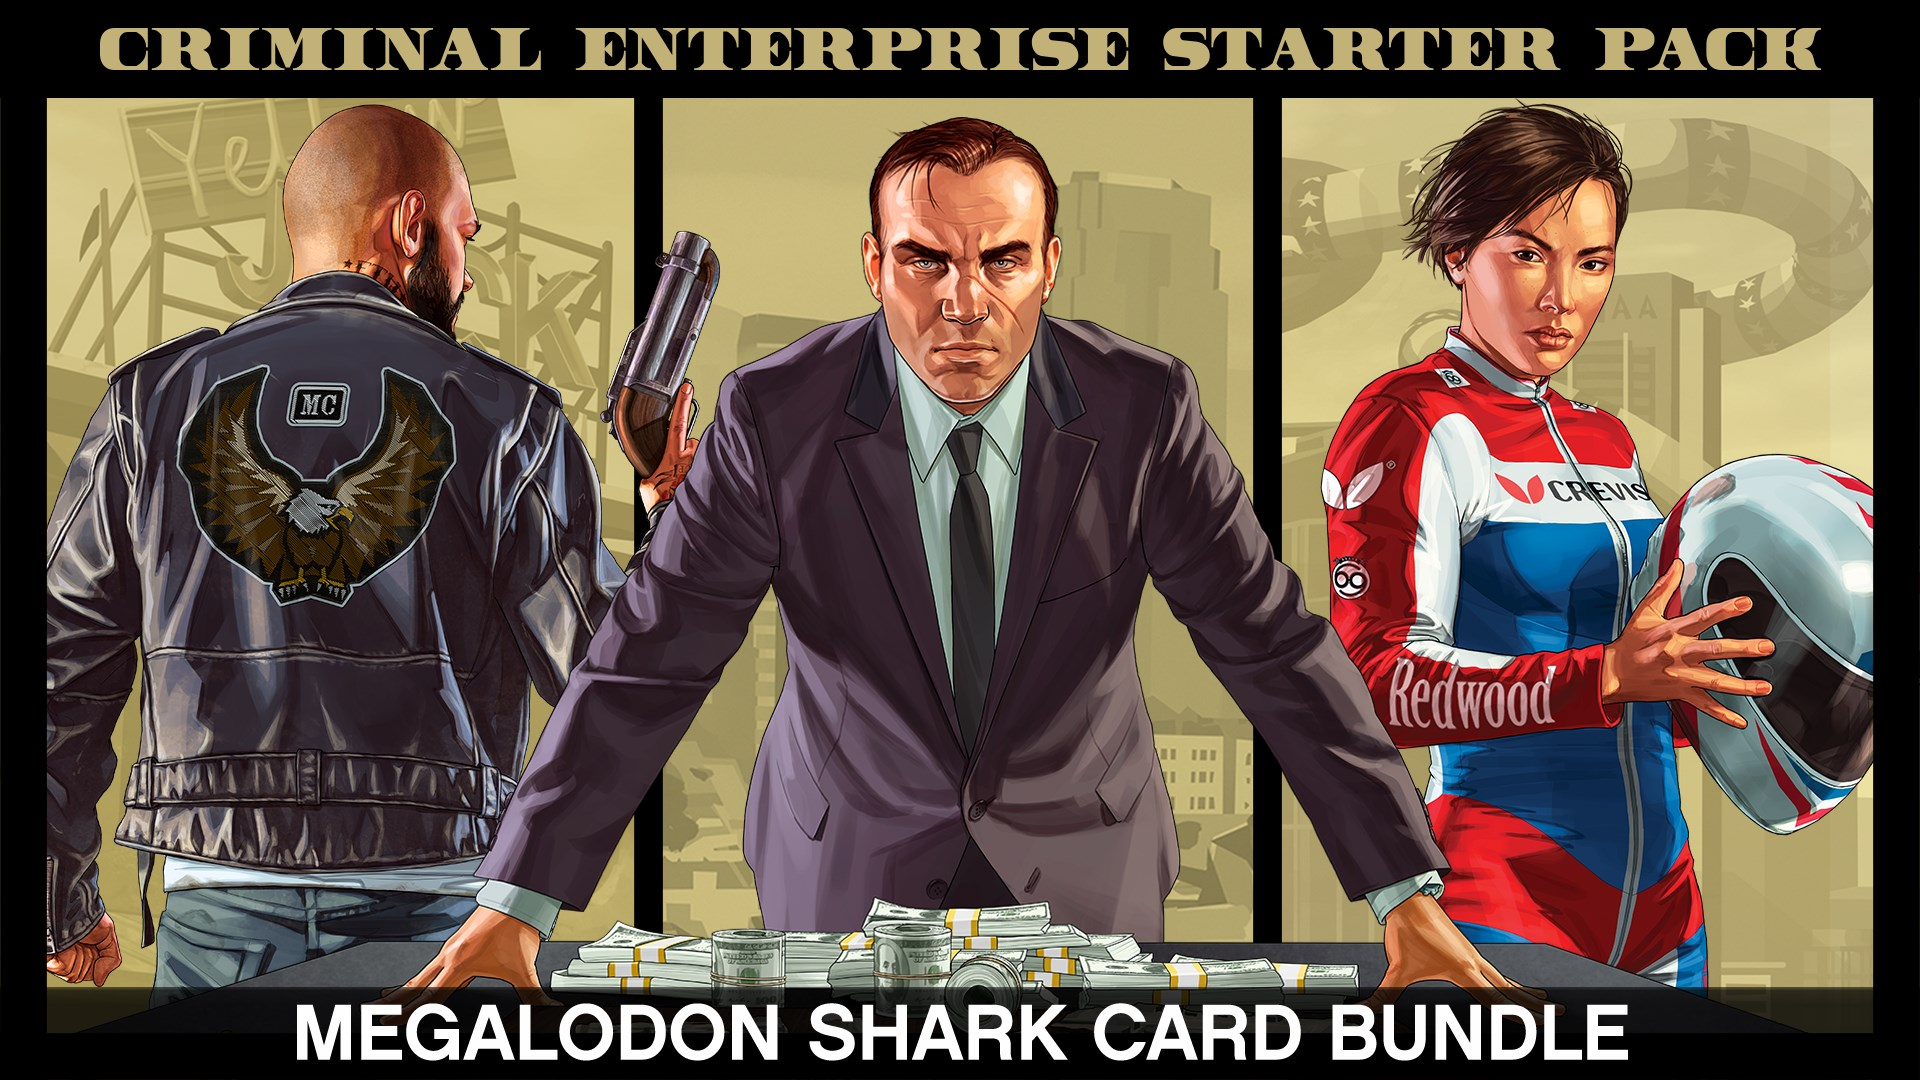 Criminal Enterprise Starter Pack and Megalodon Shark Card Bundle